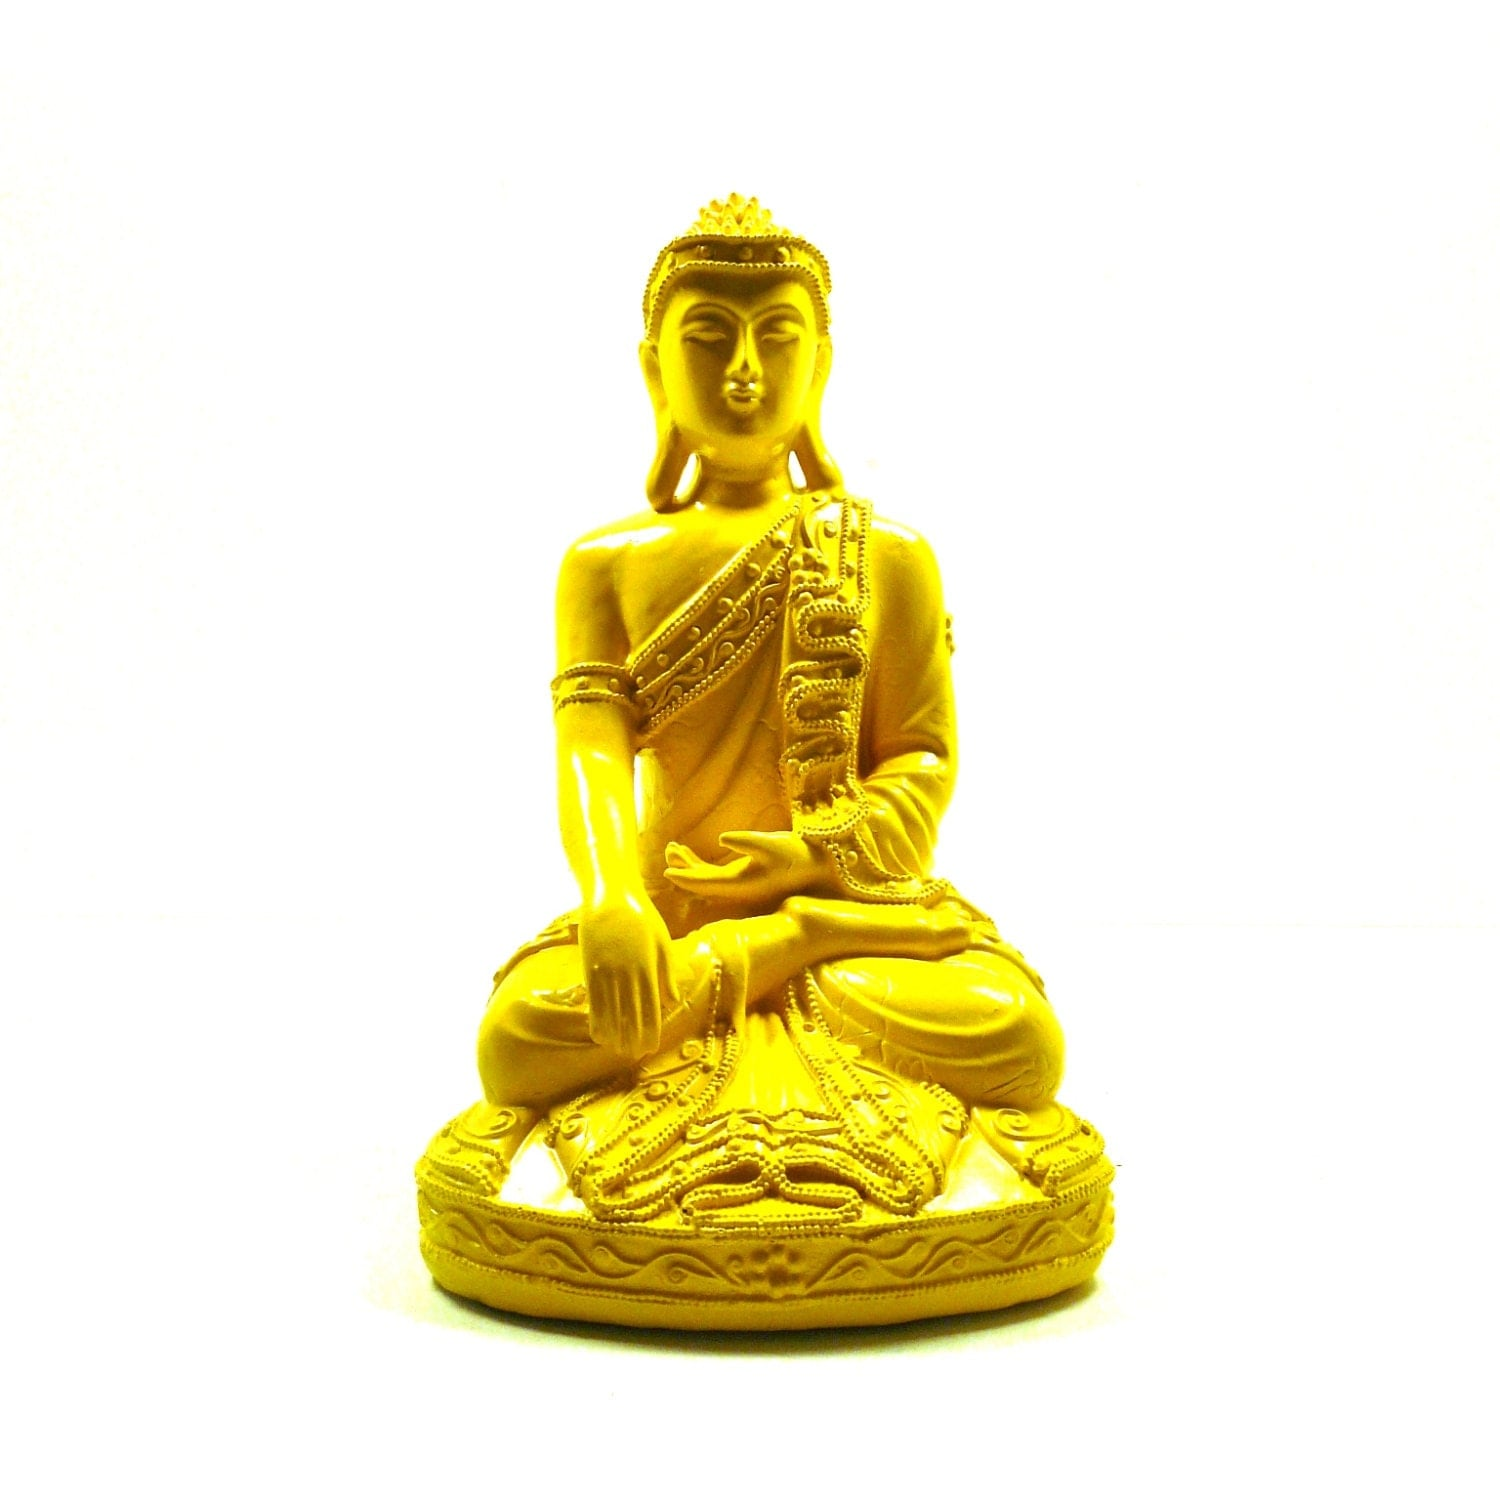 yellow buddha statue thai home decor zen painted decor by nashpop